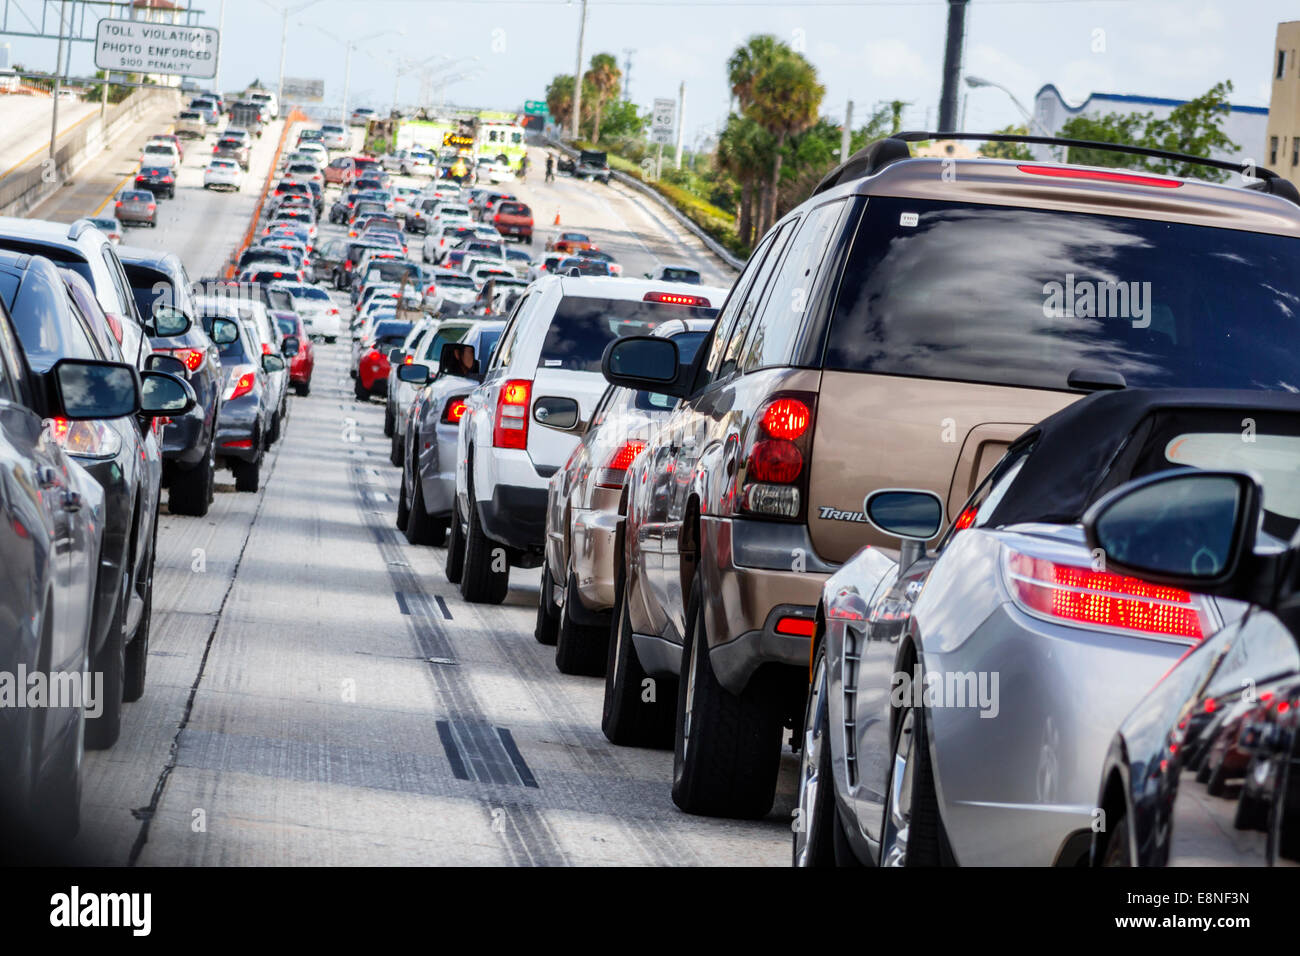 Miami Florida Interstate I-95 highway traffic stopped slowed jam